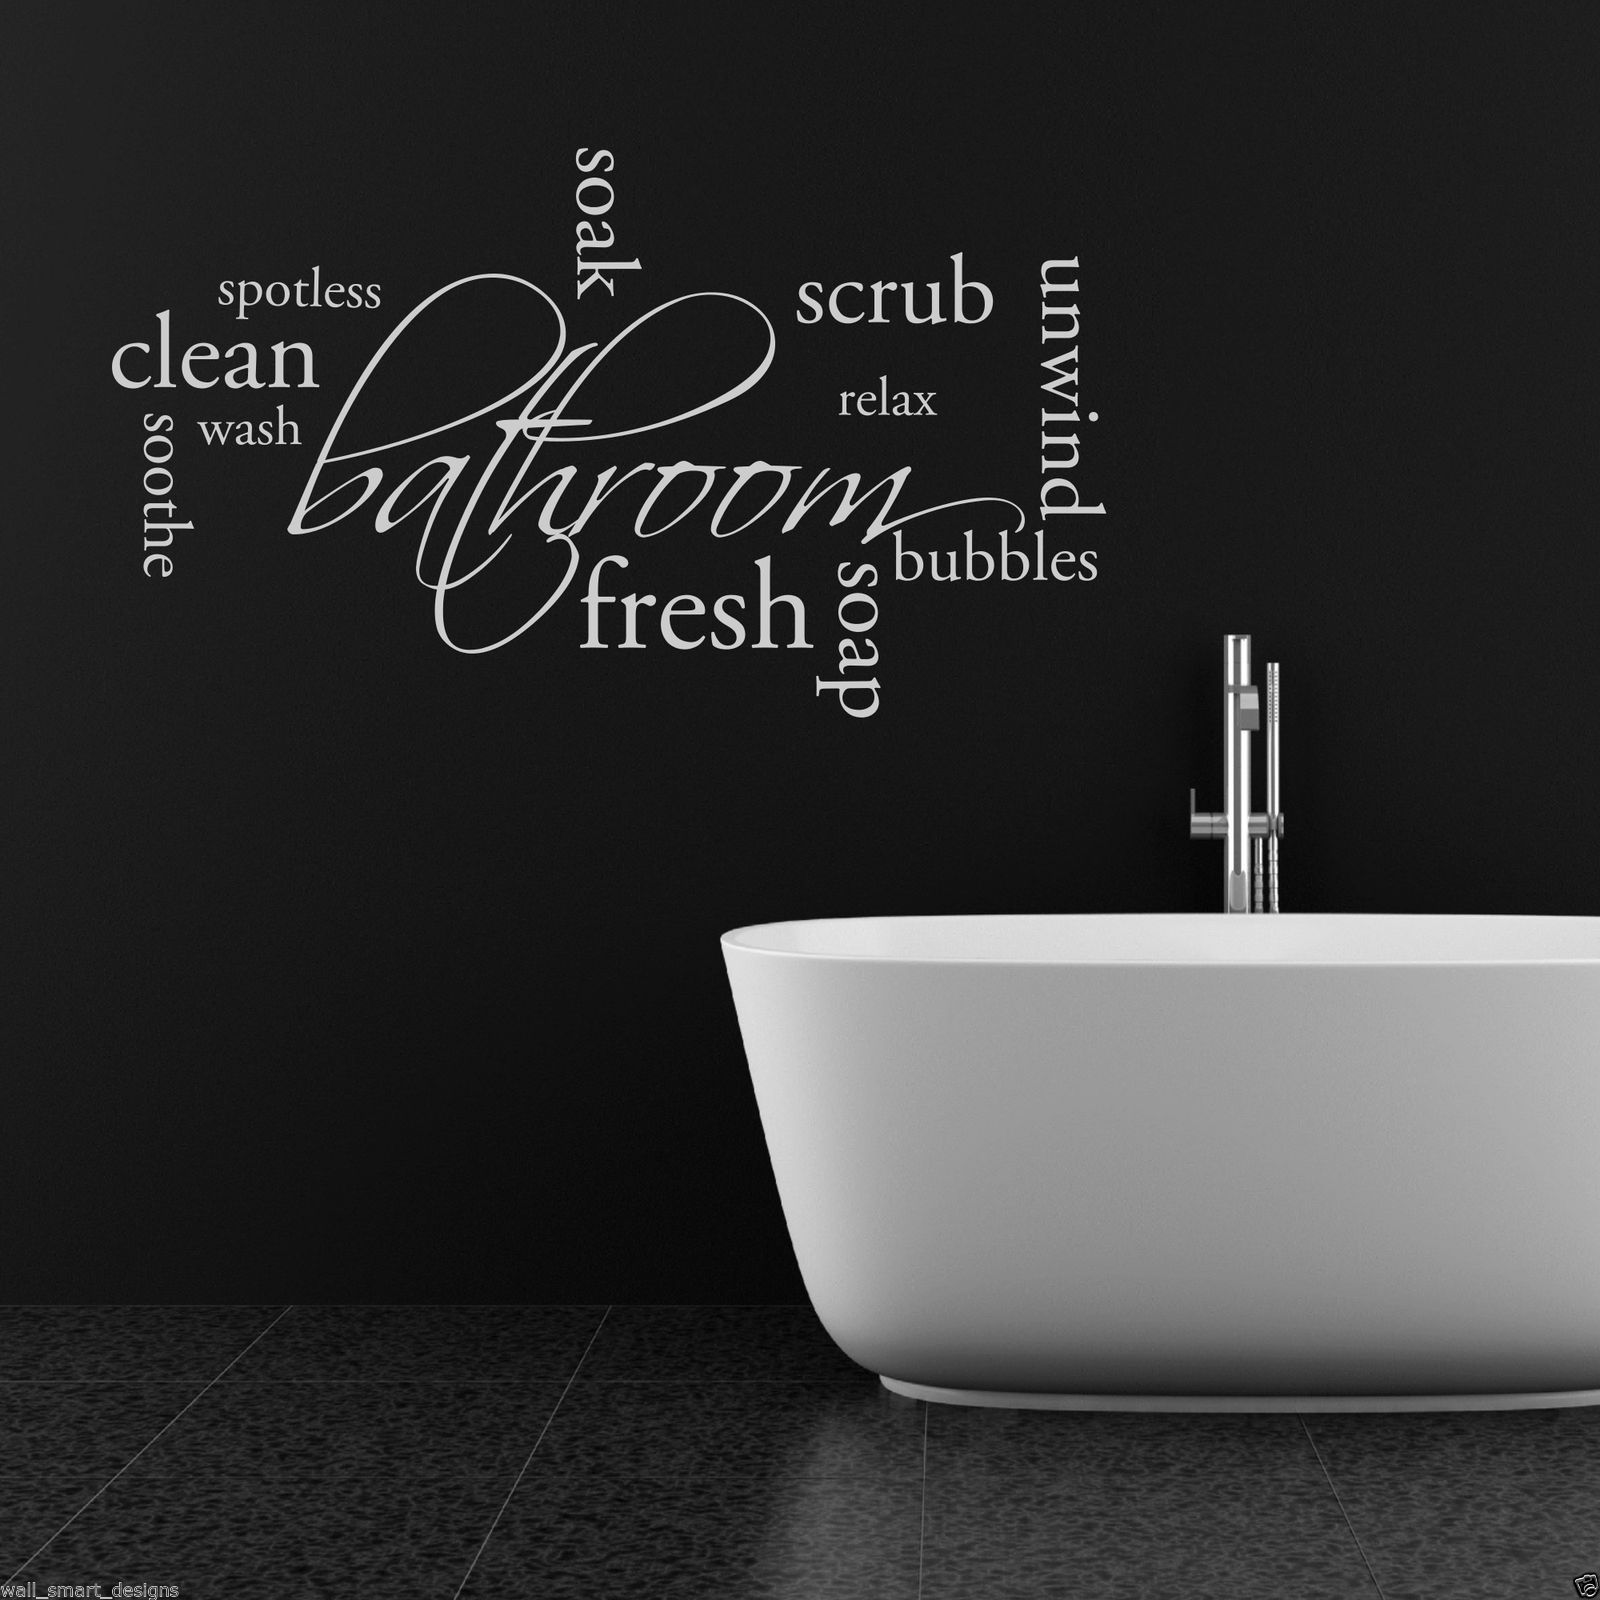 Relax soap bathroom wall art sticker quote decal